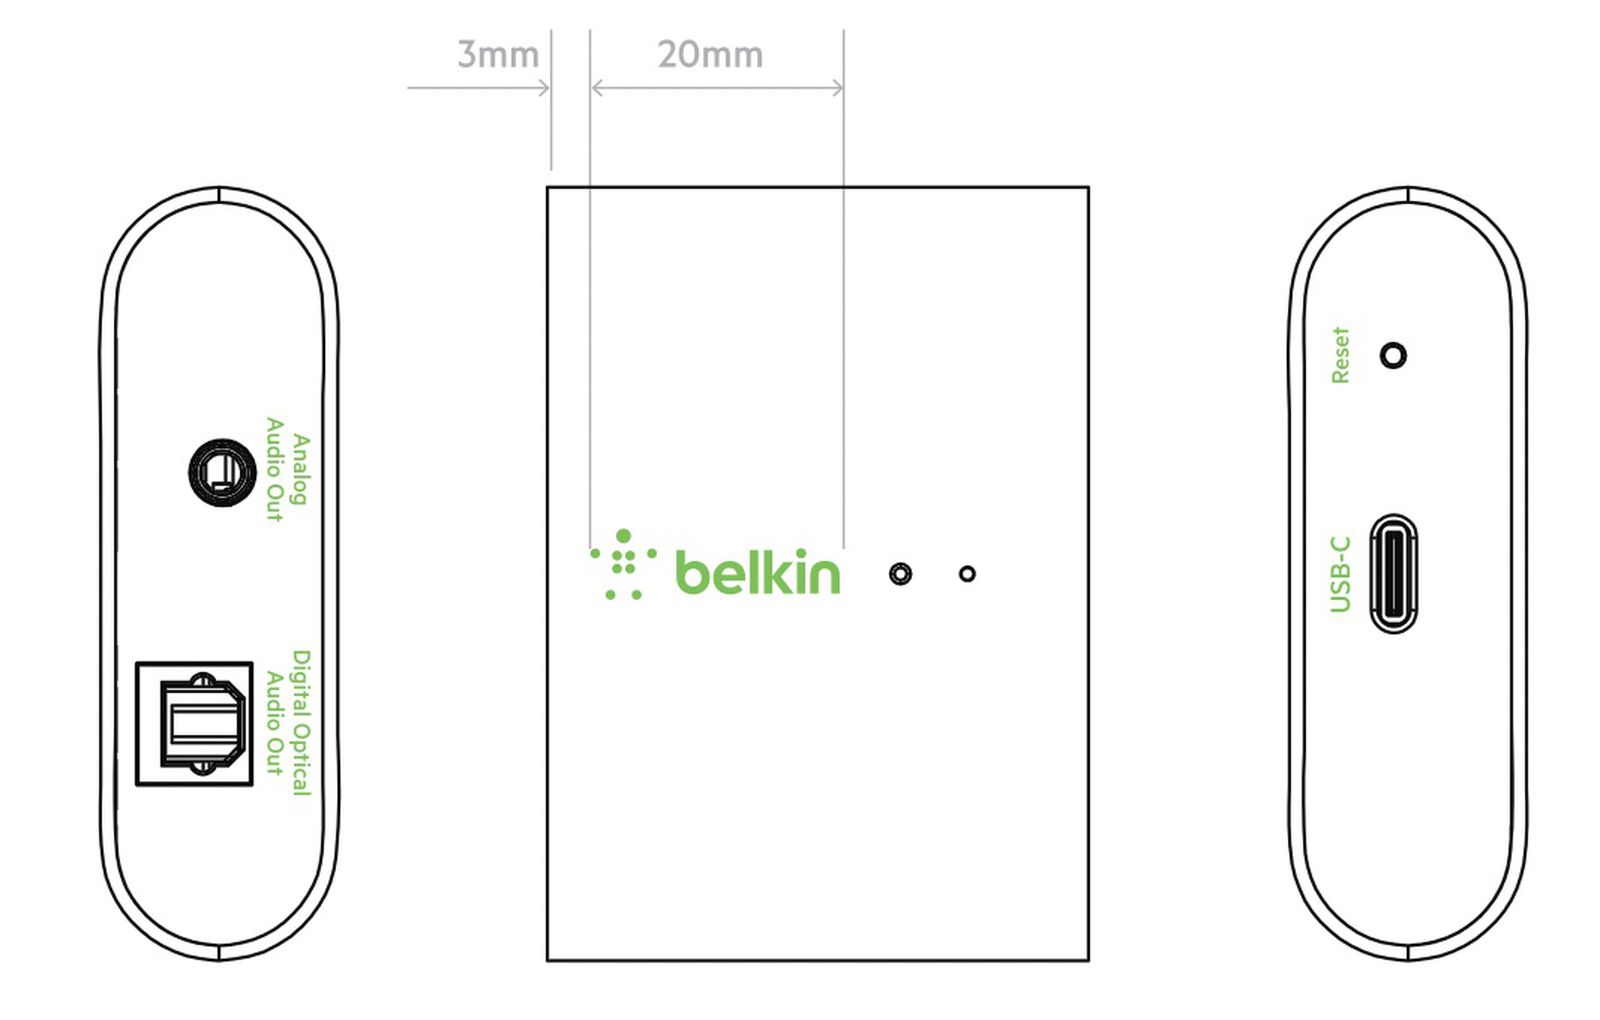 Belkin Designing 'Soundform Connect' Adapter to Add AirPlay 2 to Speakers